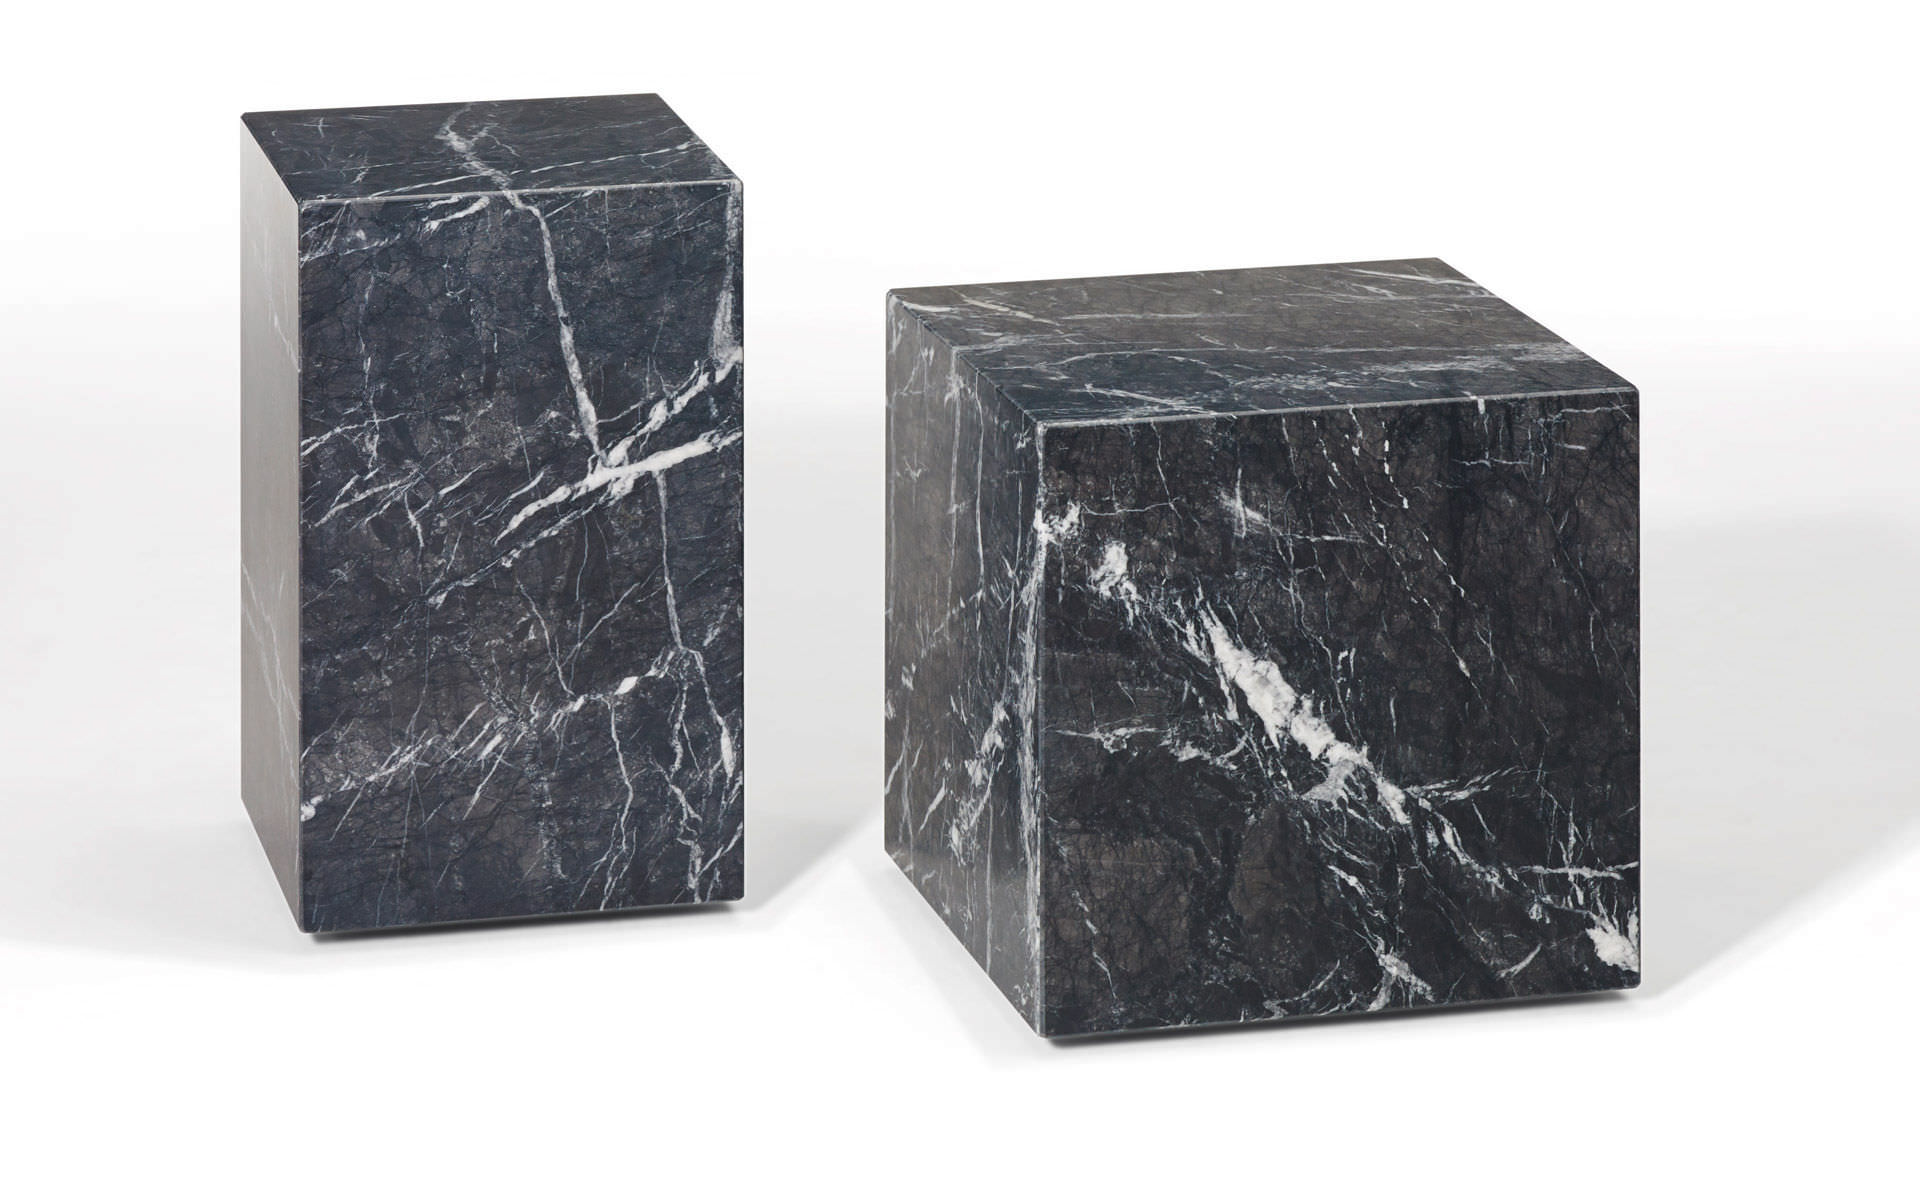 Contemporary Side Table Natural Stone Cube Shaped 1365 Qbic By Patric Draenert 2014